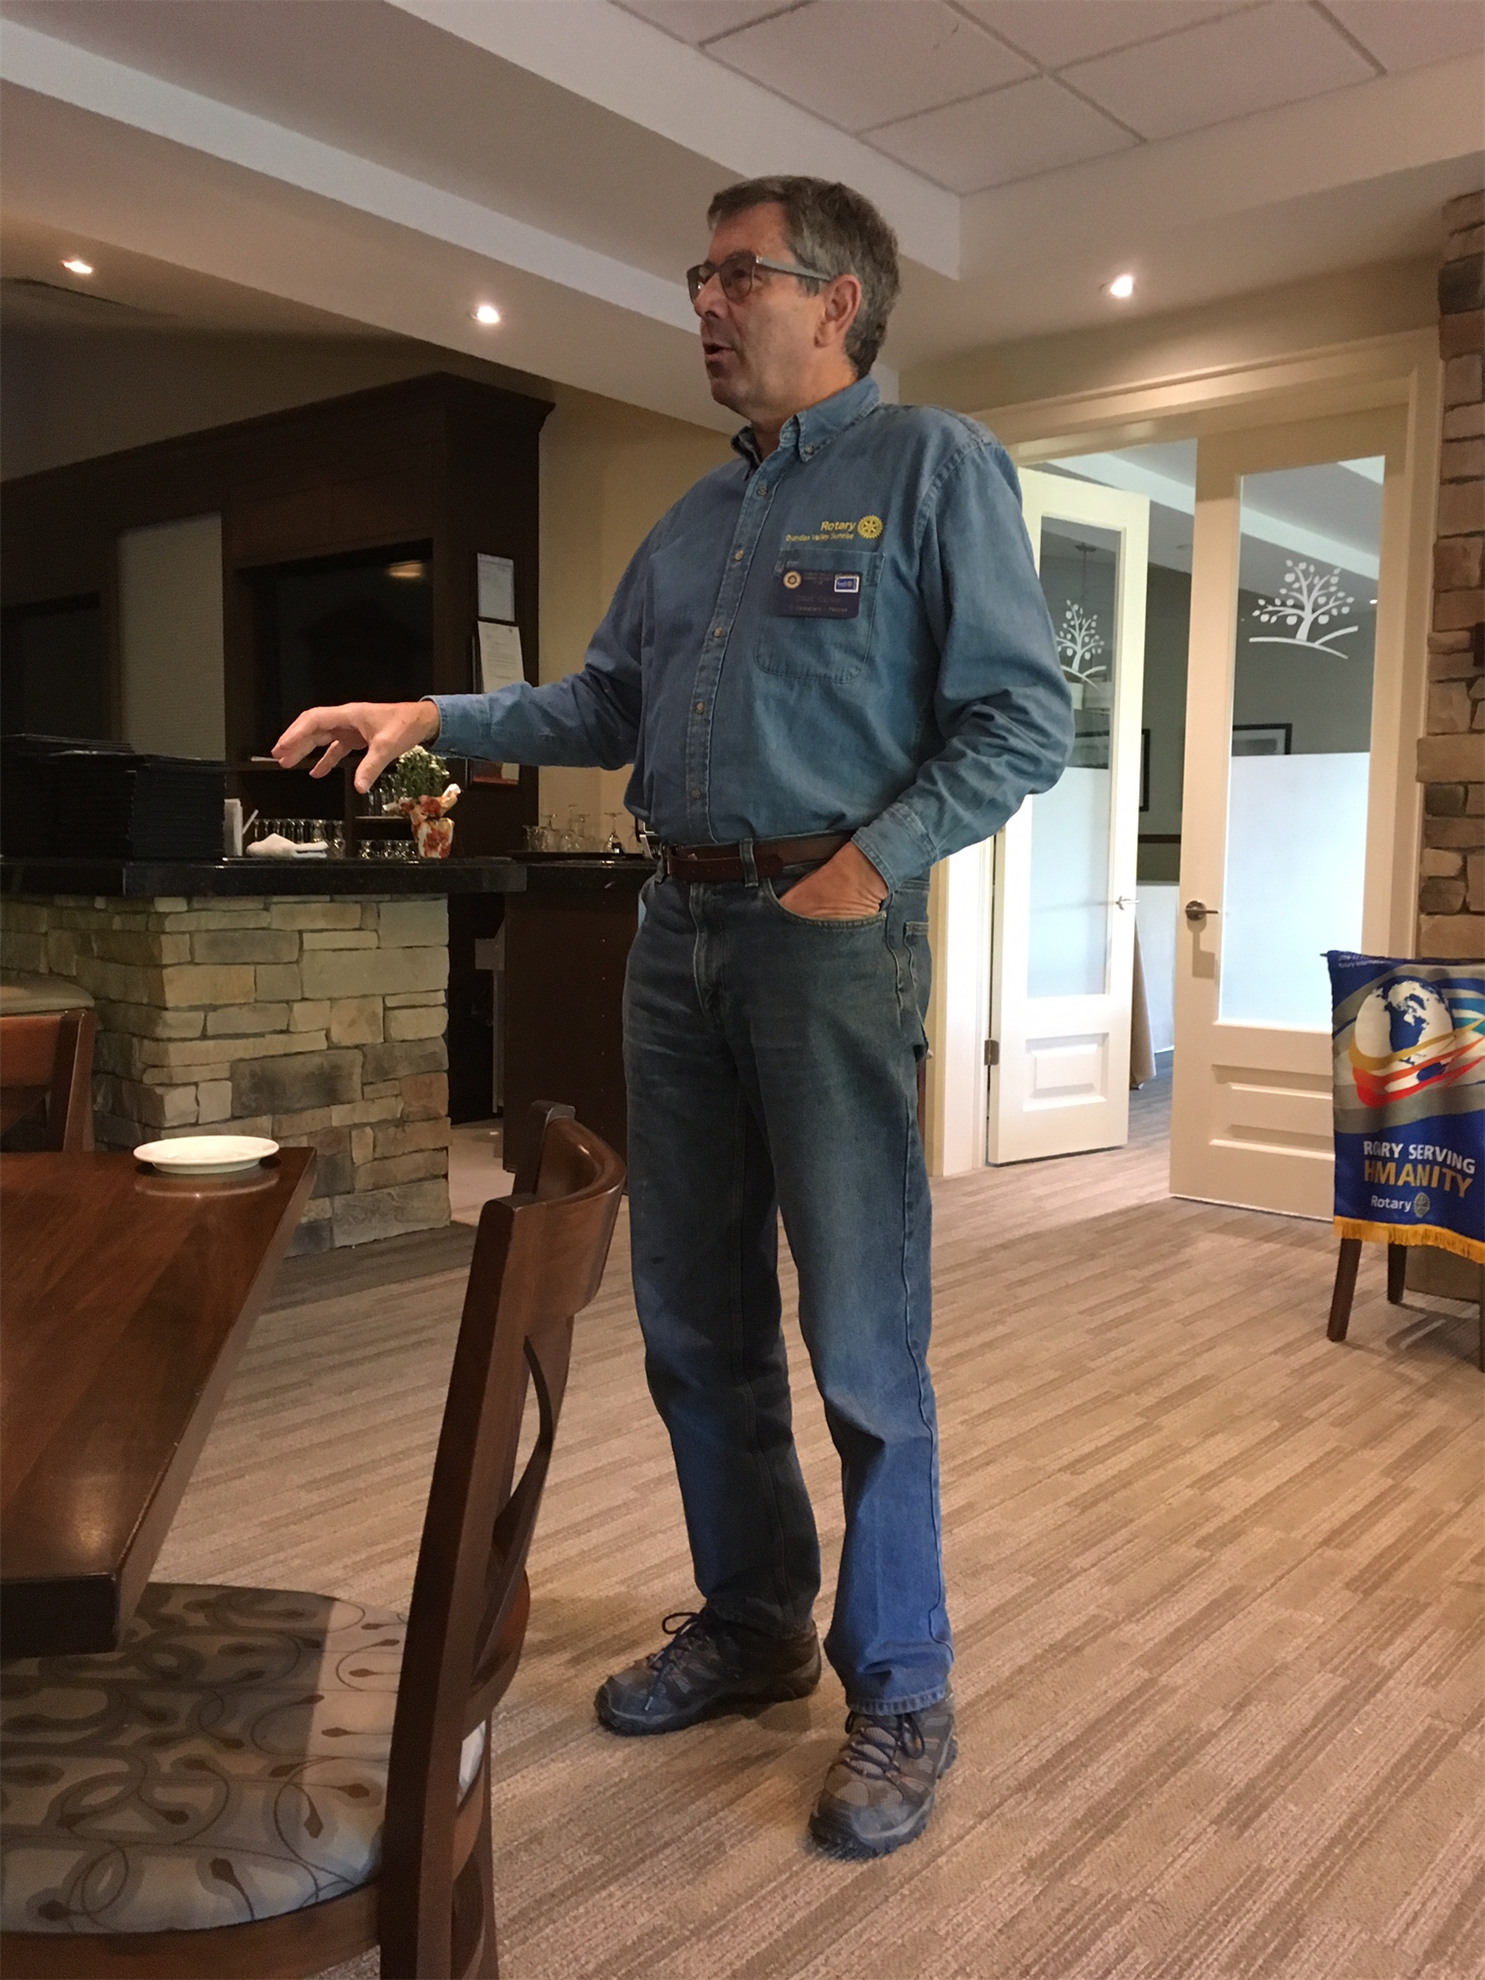 Stories Rotary Club Of Dundas Valley Sunrise Rodeo Bottom Abigail Pants Navy L He Continued Working With Cgi On Outsourcing And Setting Up Help Desks Until His Retirement In 2010